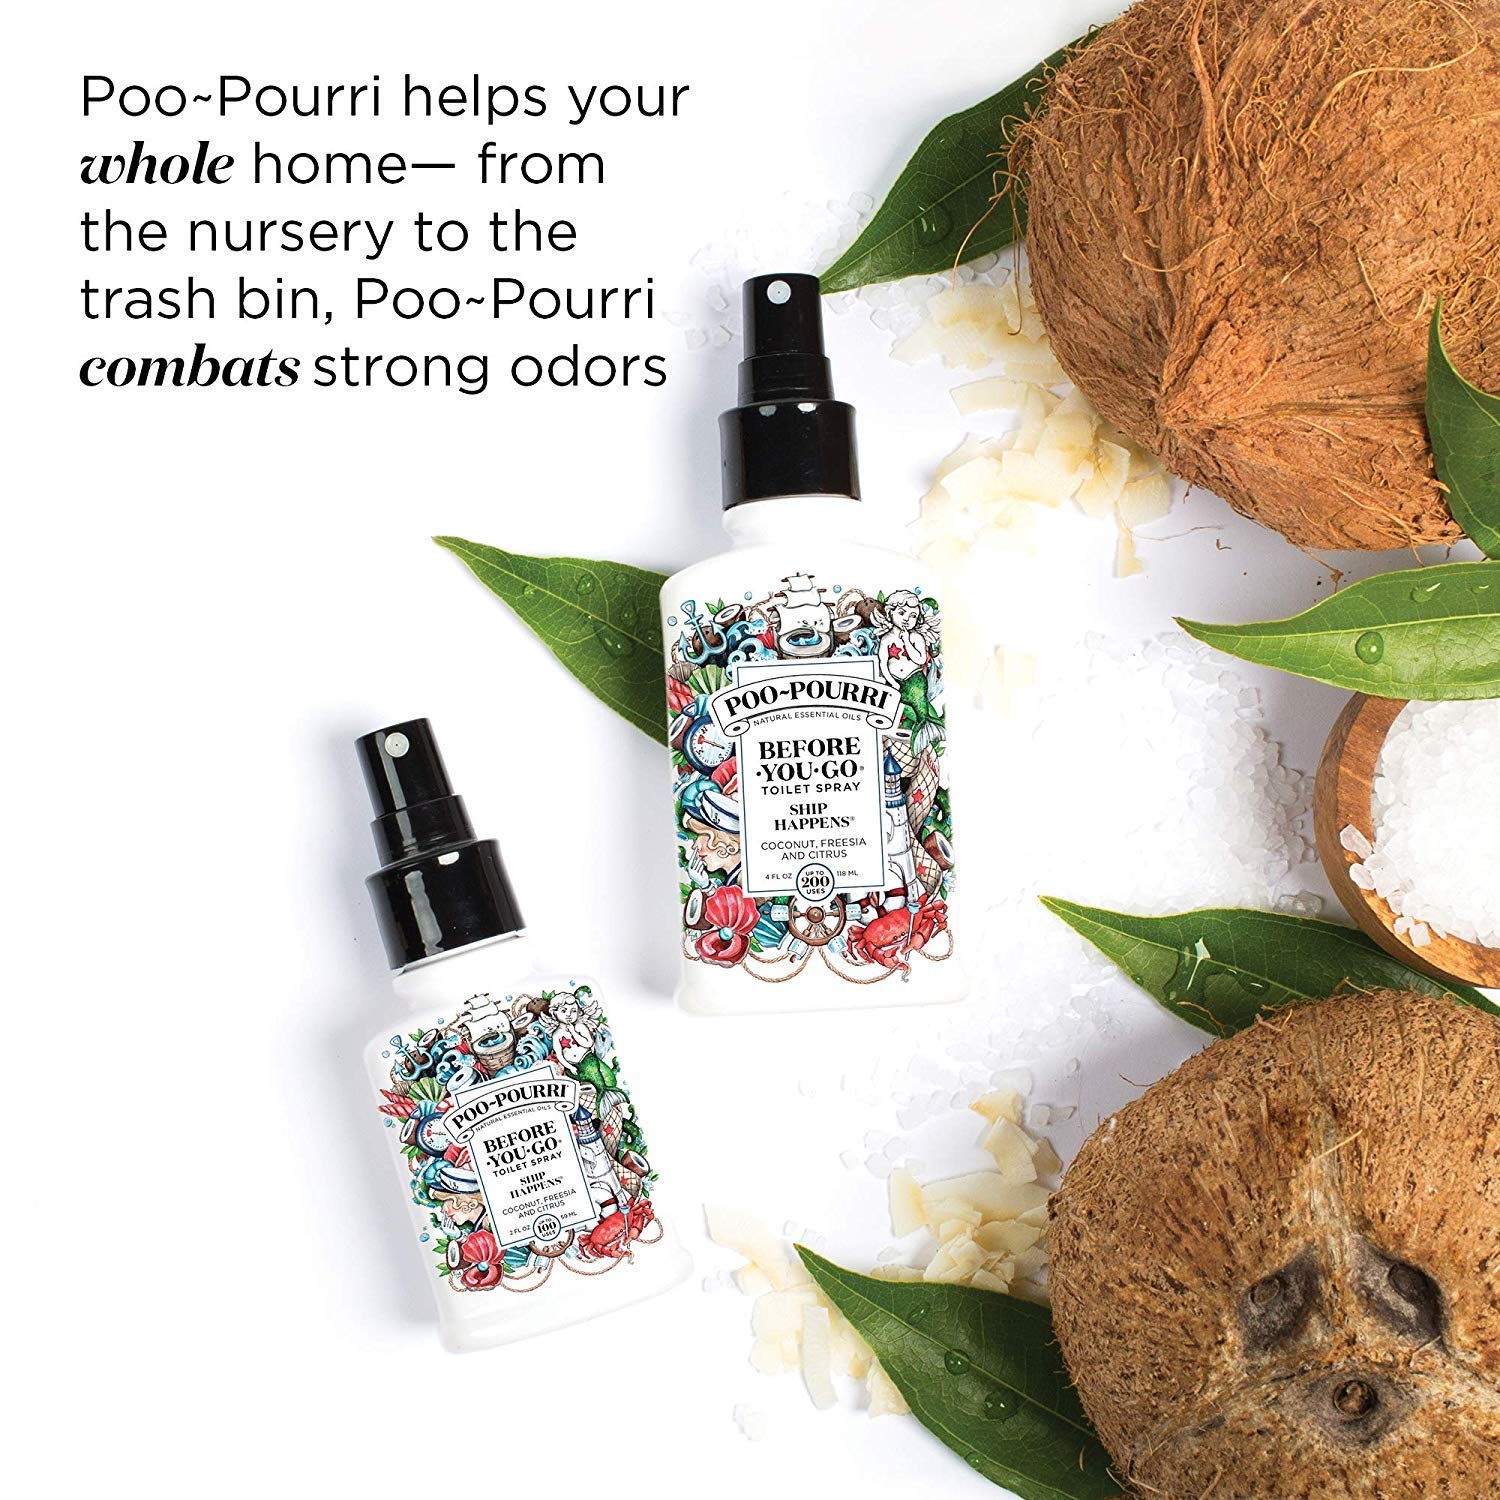 Poo-Pourri in A Pinch Pack Toilet Spray Gift Set, 5 Pack 10 mL, and 1.4 Ounce Ship Happens Bottle by Poo-Pourri (Image #8)